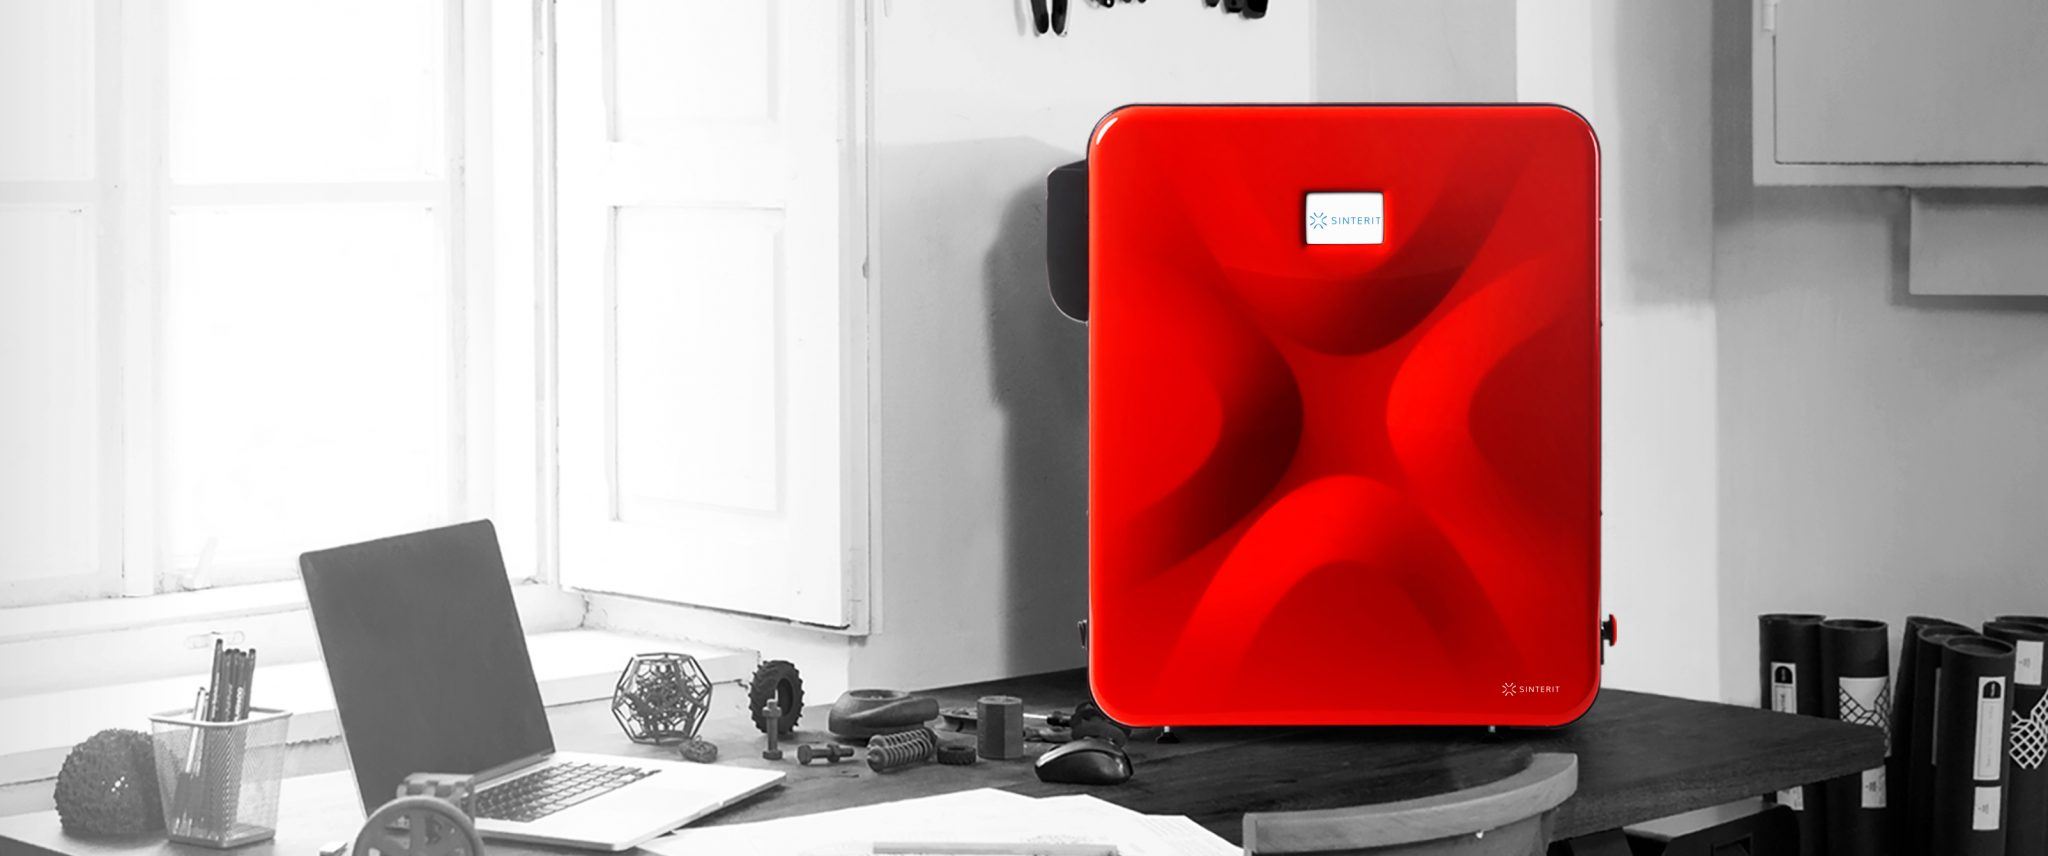 The LISA 1.5 SLS 3D printer. Image via Sinterit.